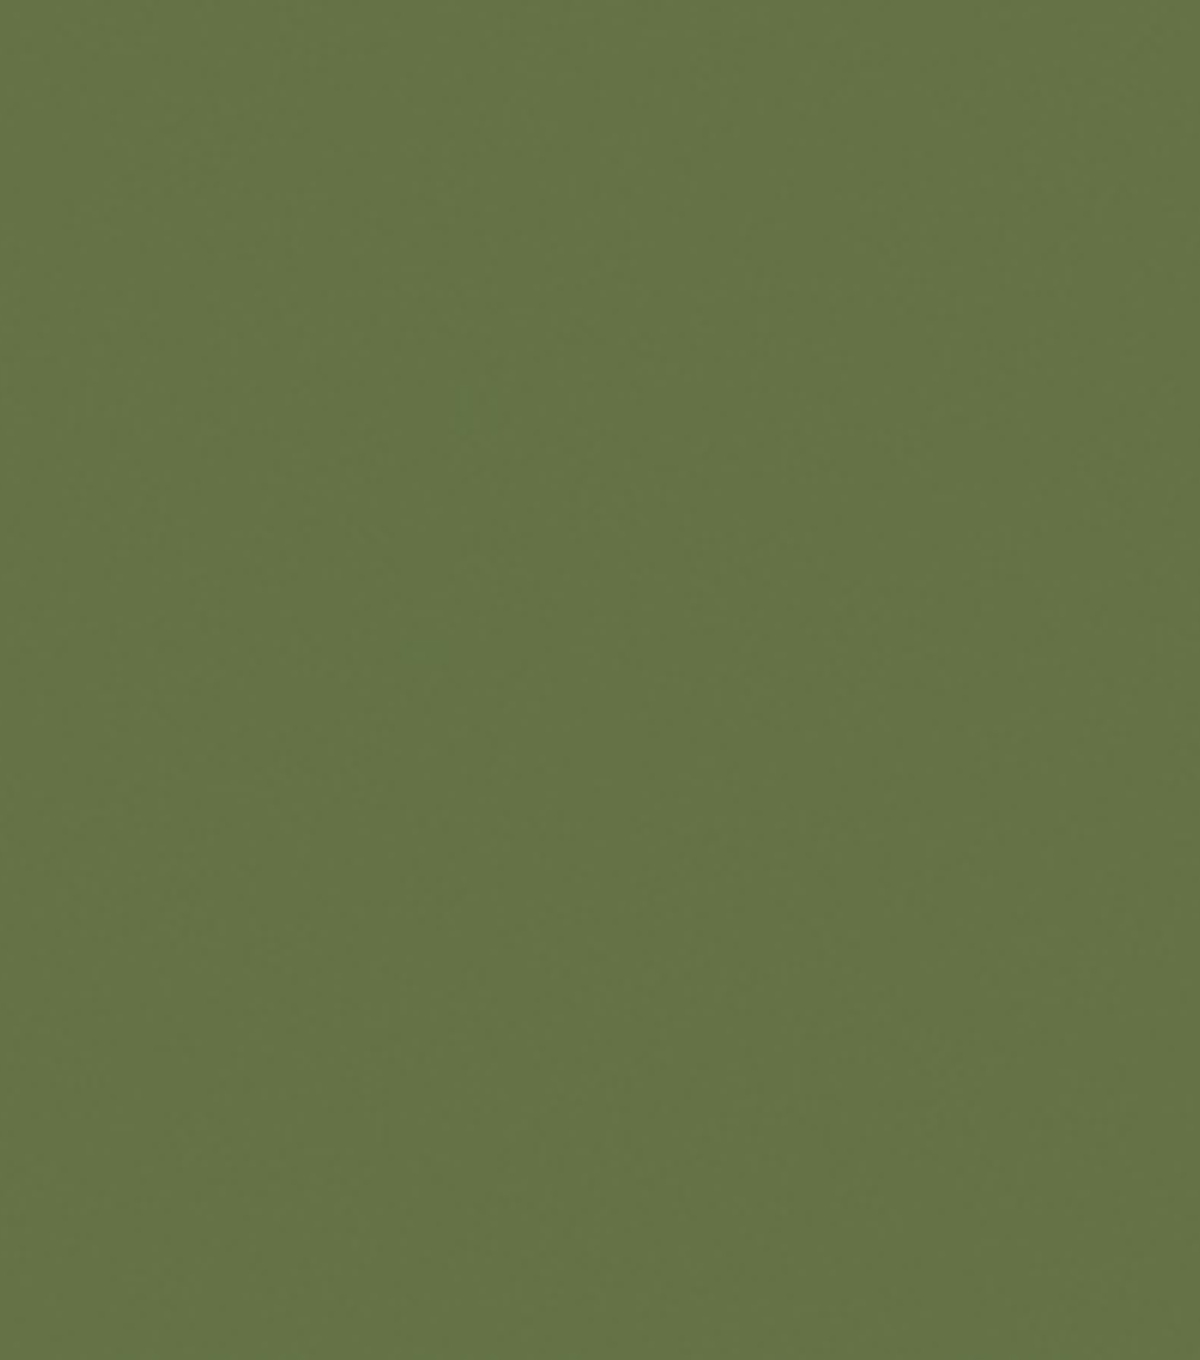 Delta Ceramcoat Acrylic Paint 2 oz, Dark Forest Green